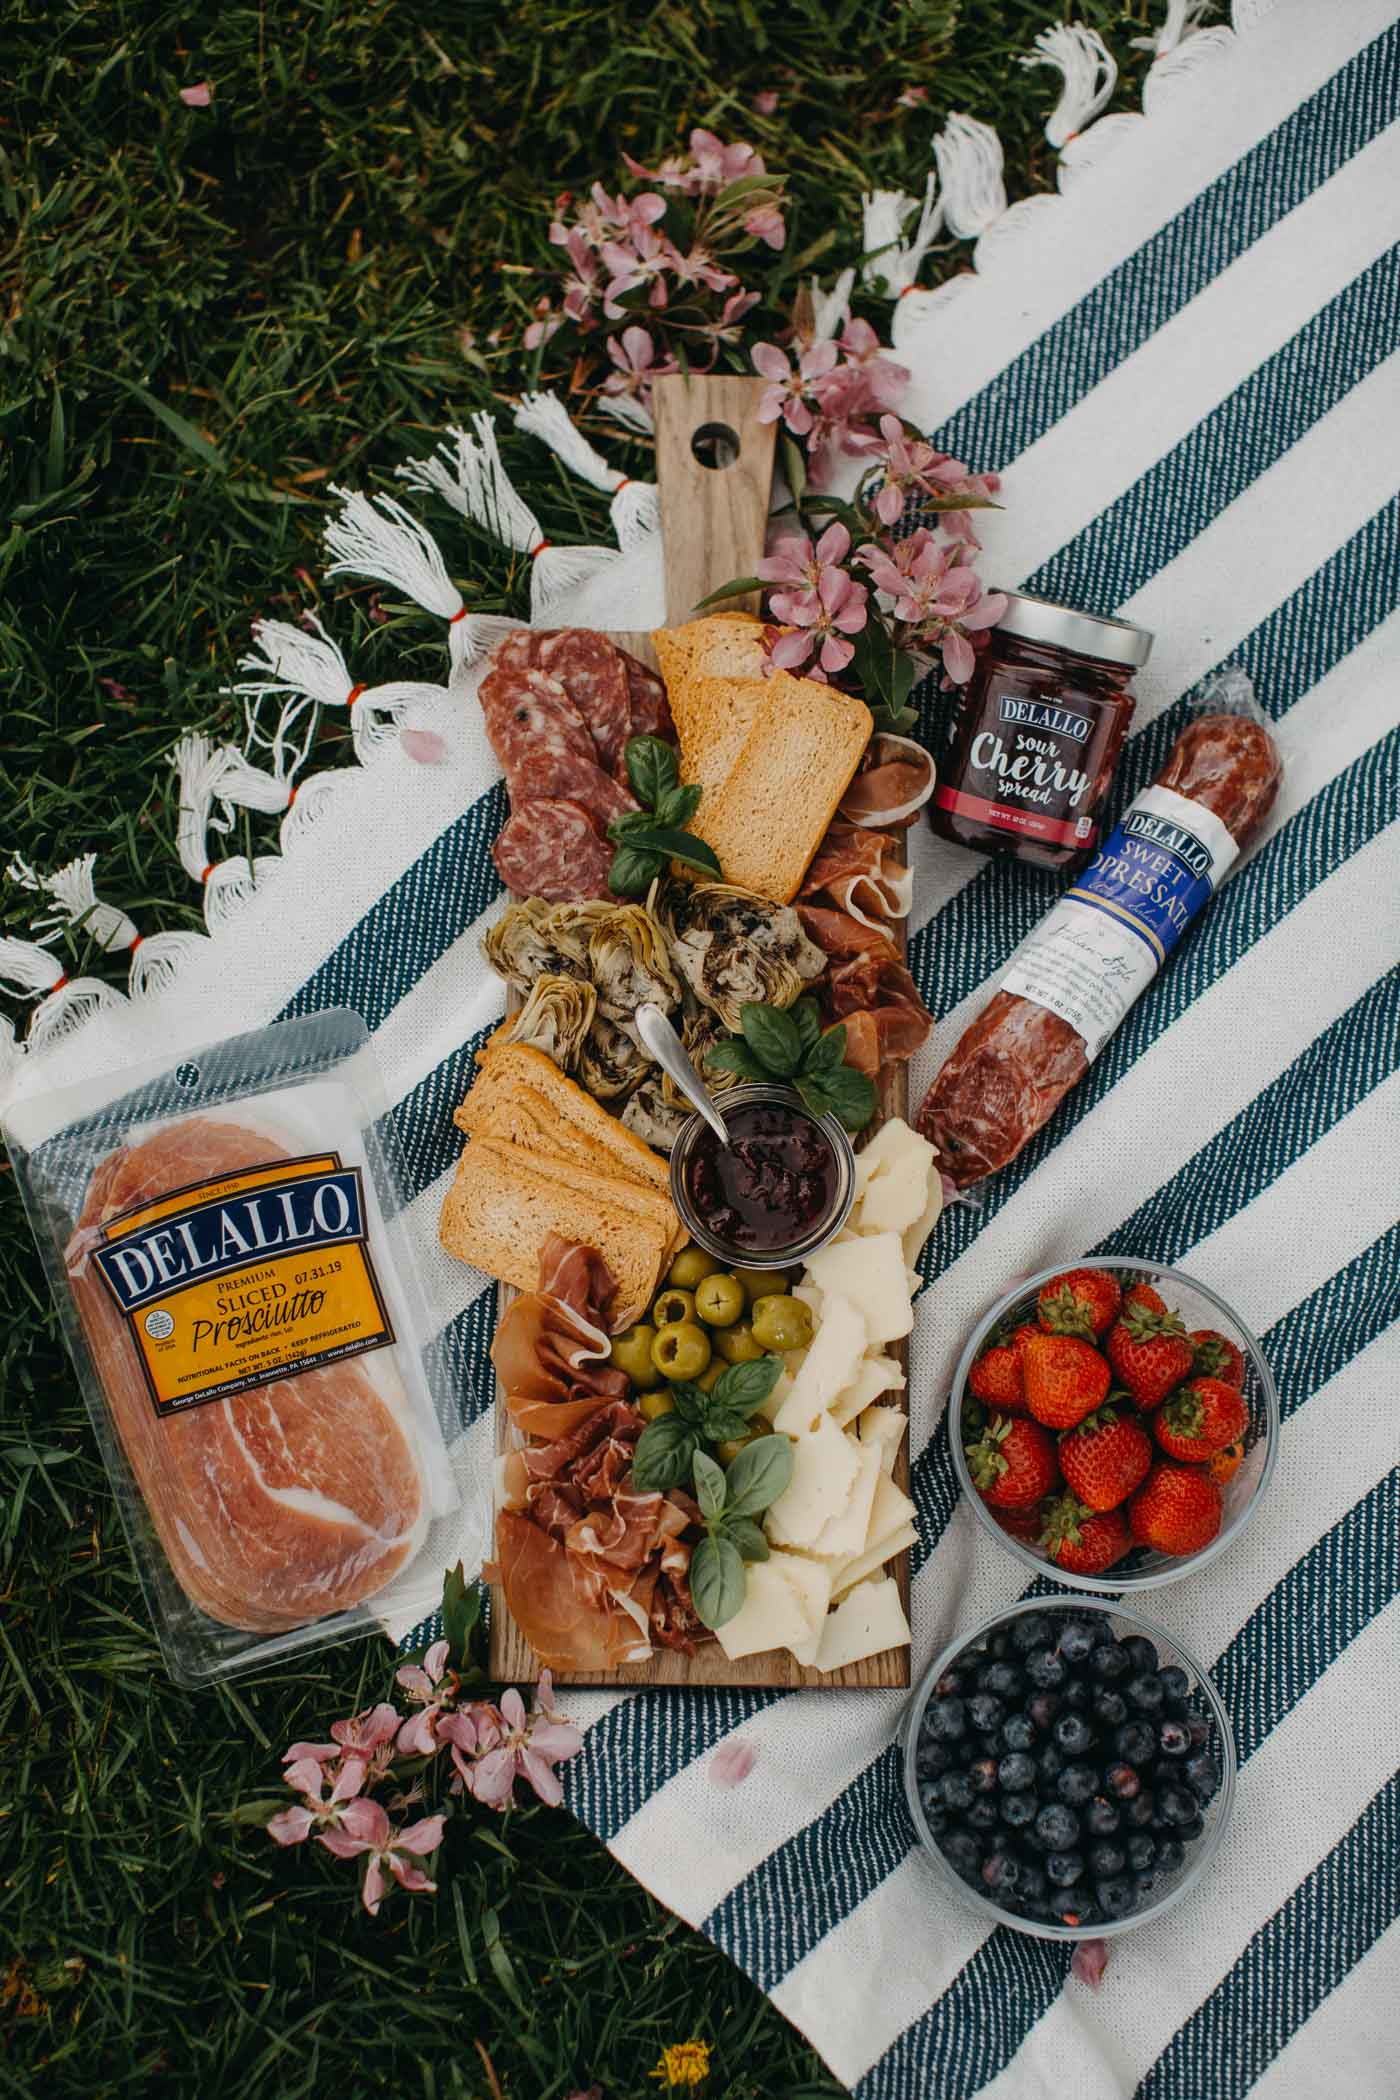 overhead view of summer charcuterie board on striped blue picnic blanket. board contains cheese, meats, olive, artichoke hearts, & fresh herbs.